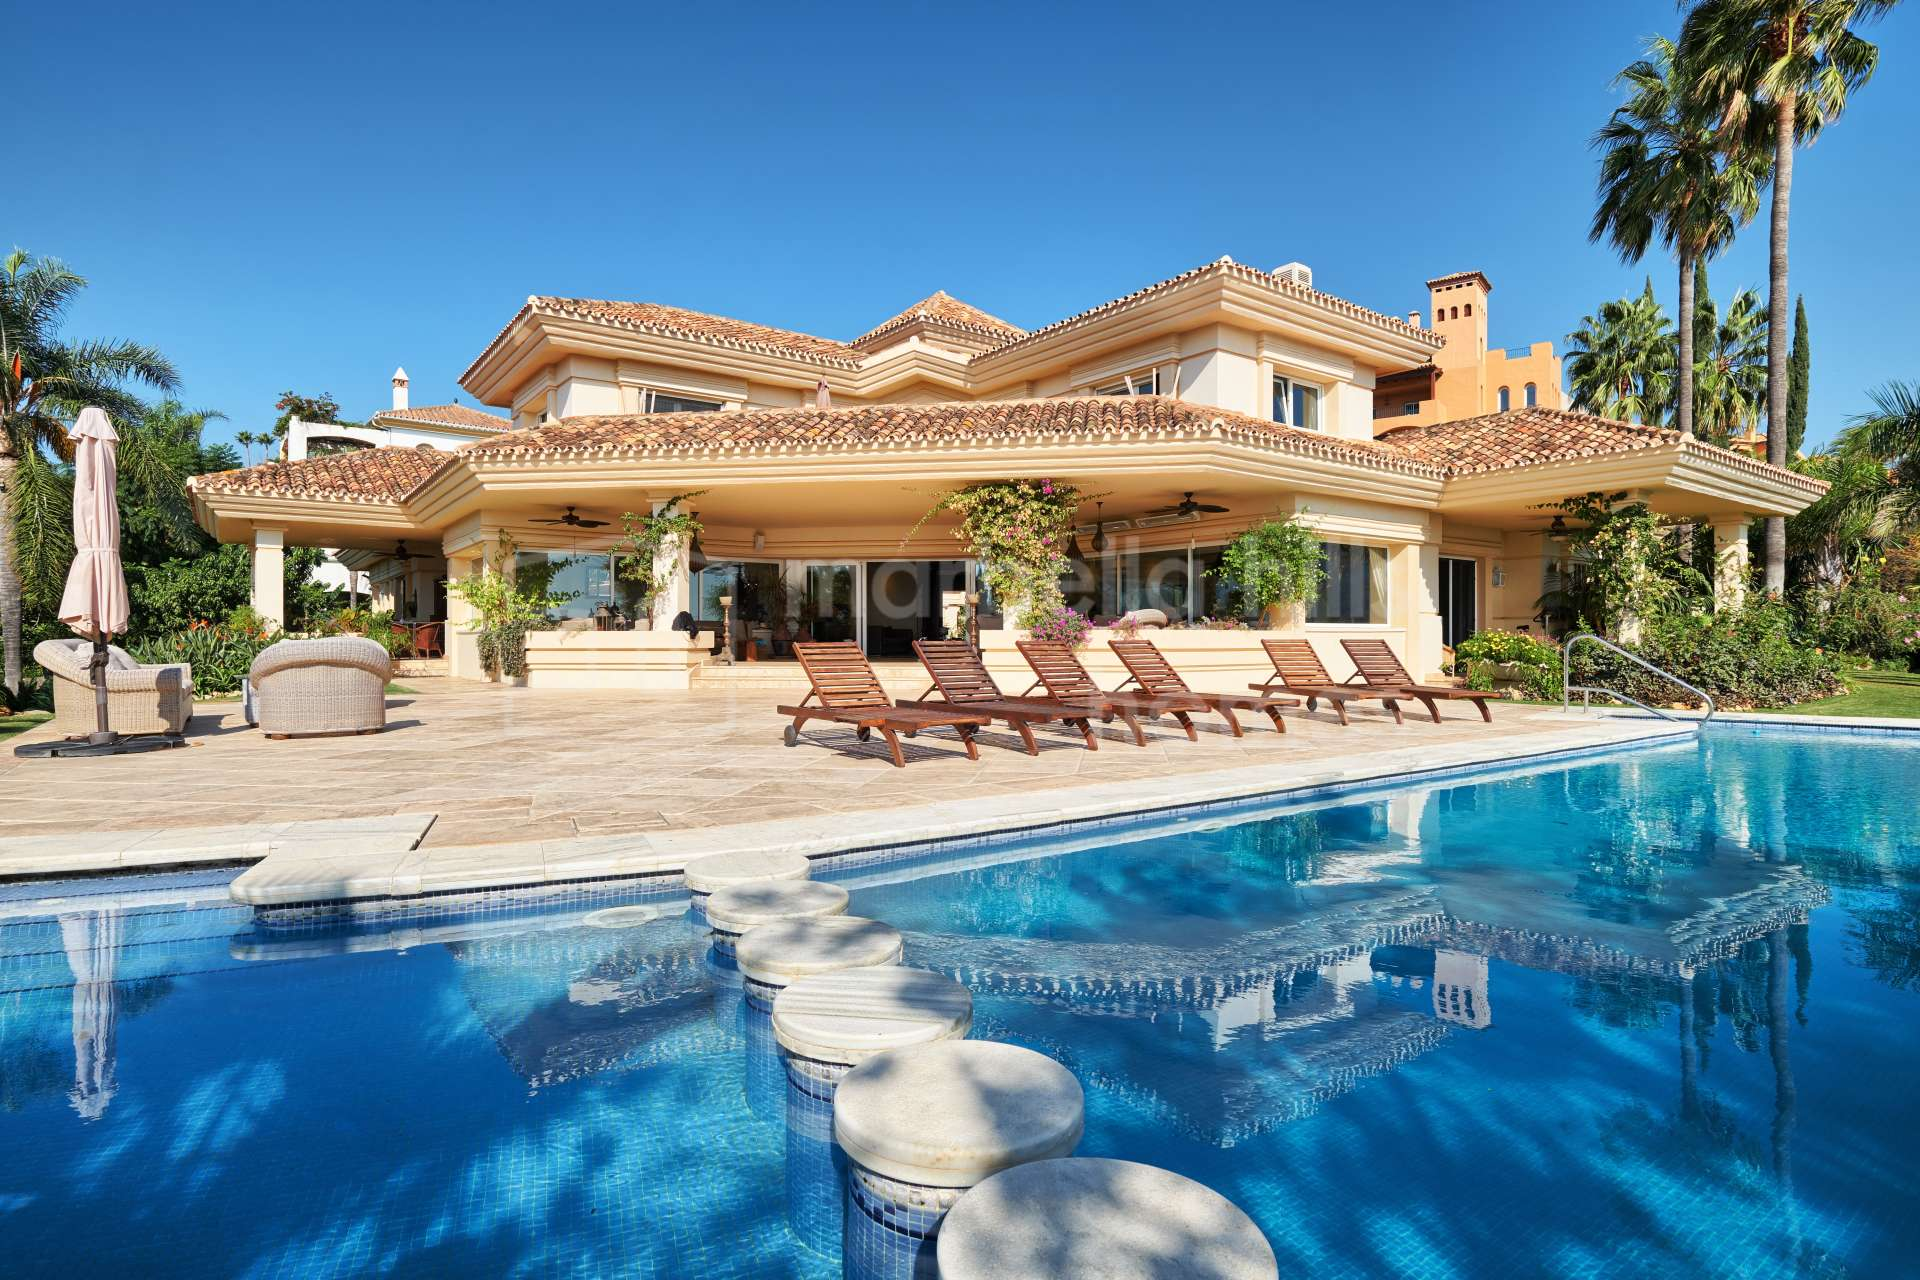 Charming classic 7 bedroom villa in La Cerquilla with panoramic views - Nueva Andalucia